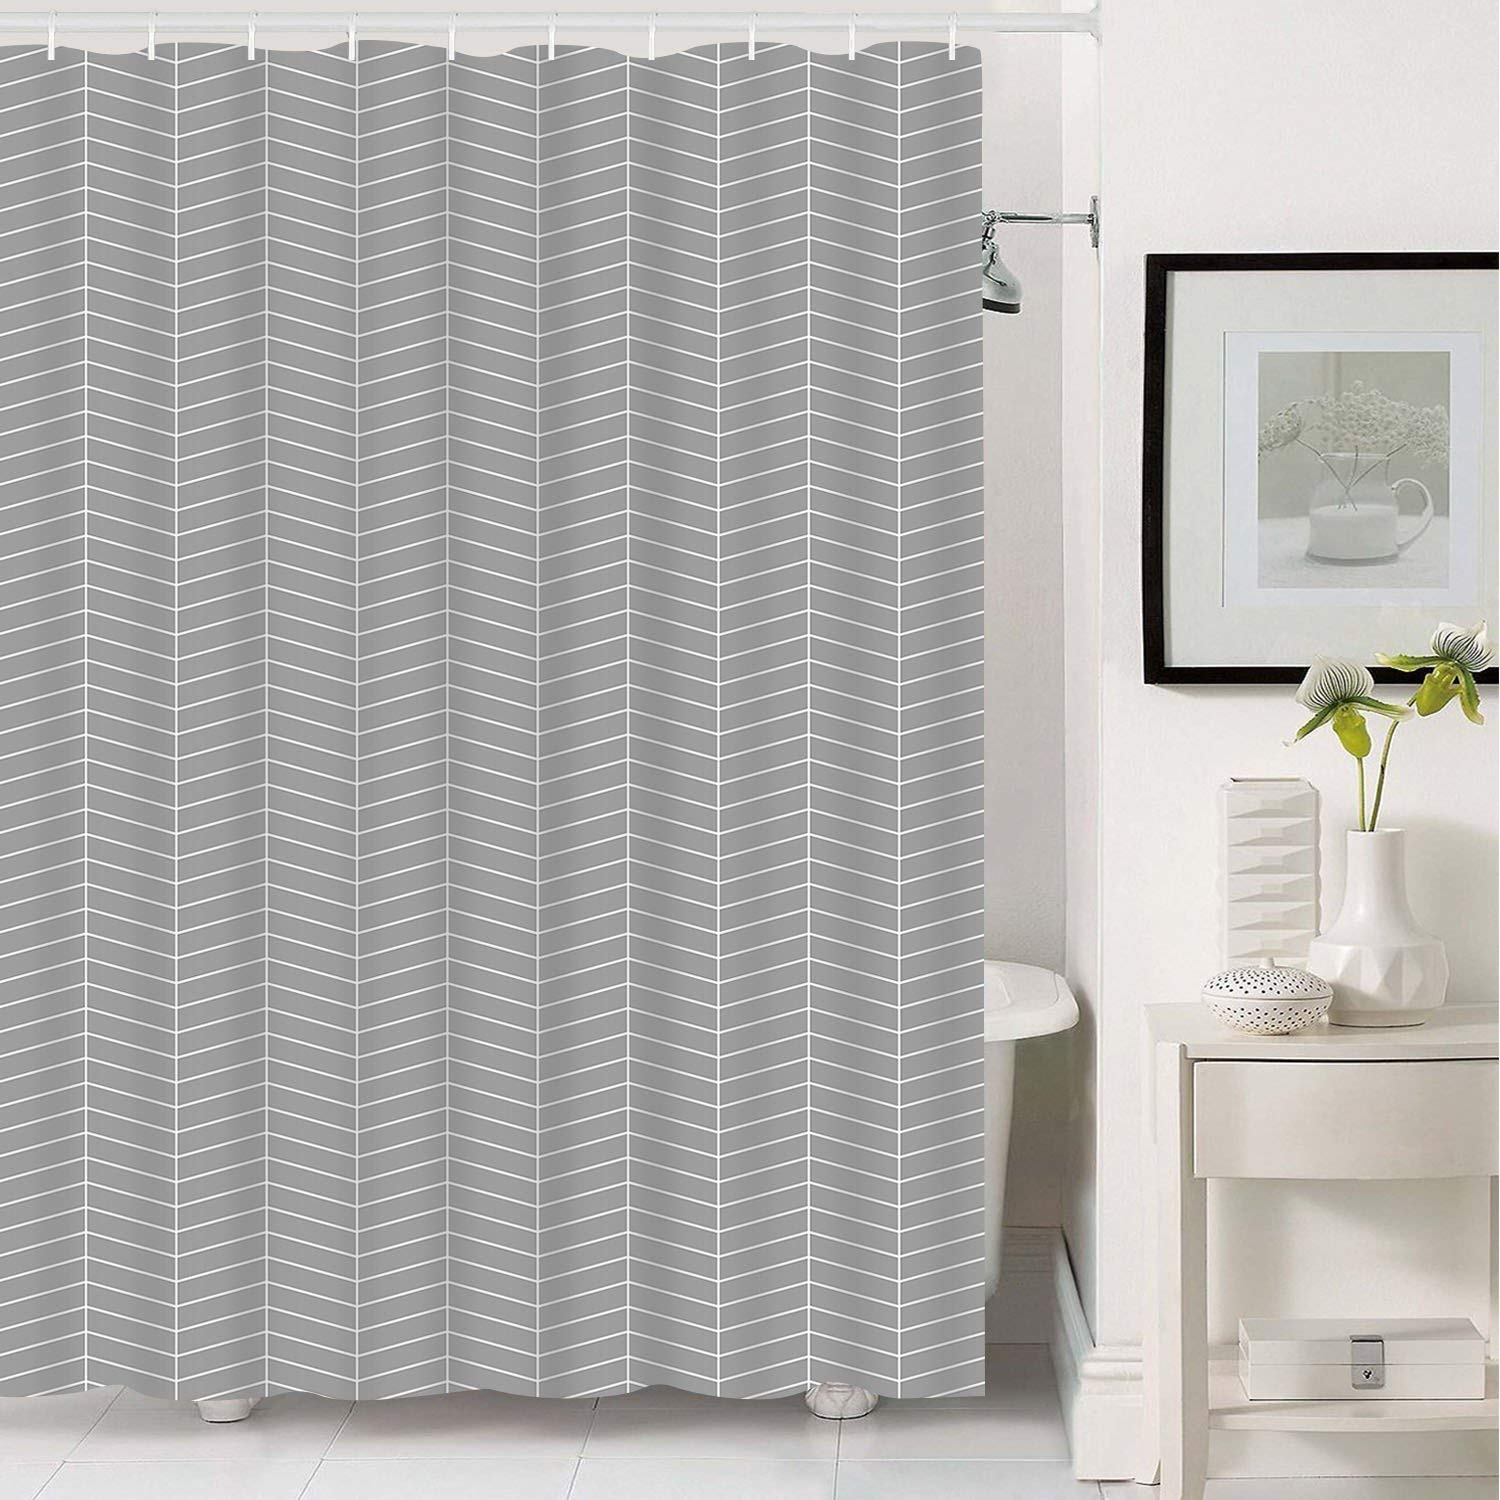 Get Quotations Grey Stripe Bathroom Shower Curtain With 12 Hooks Geometric Fabric Curtains Durable Waterproof Mildew Resistant